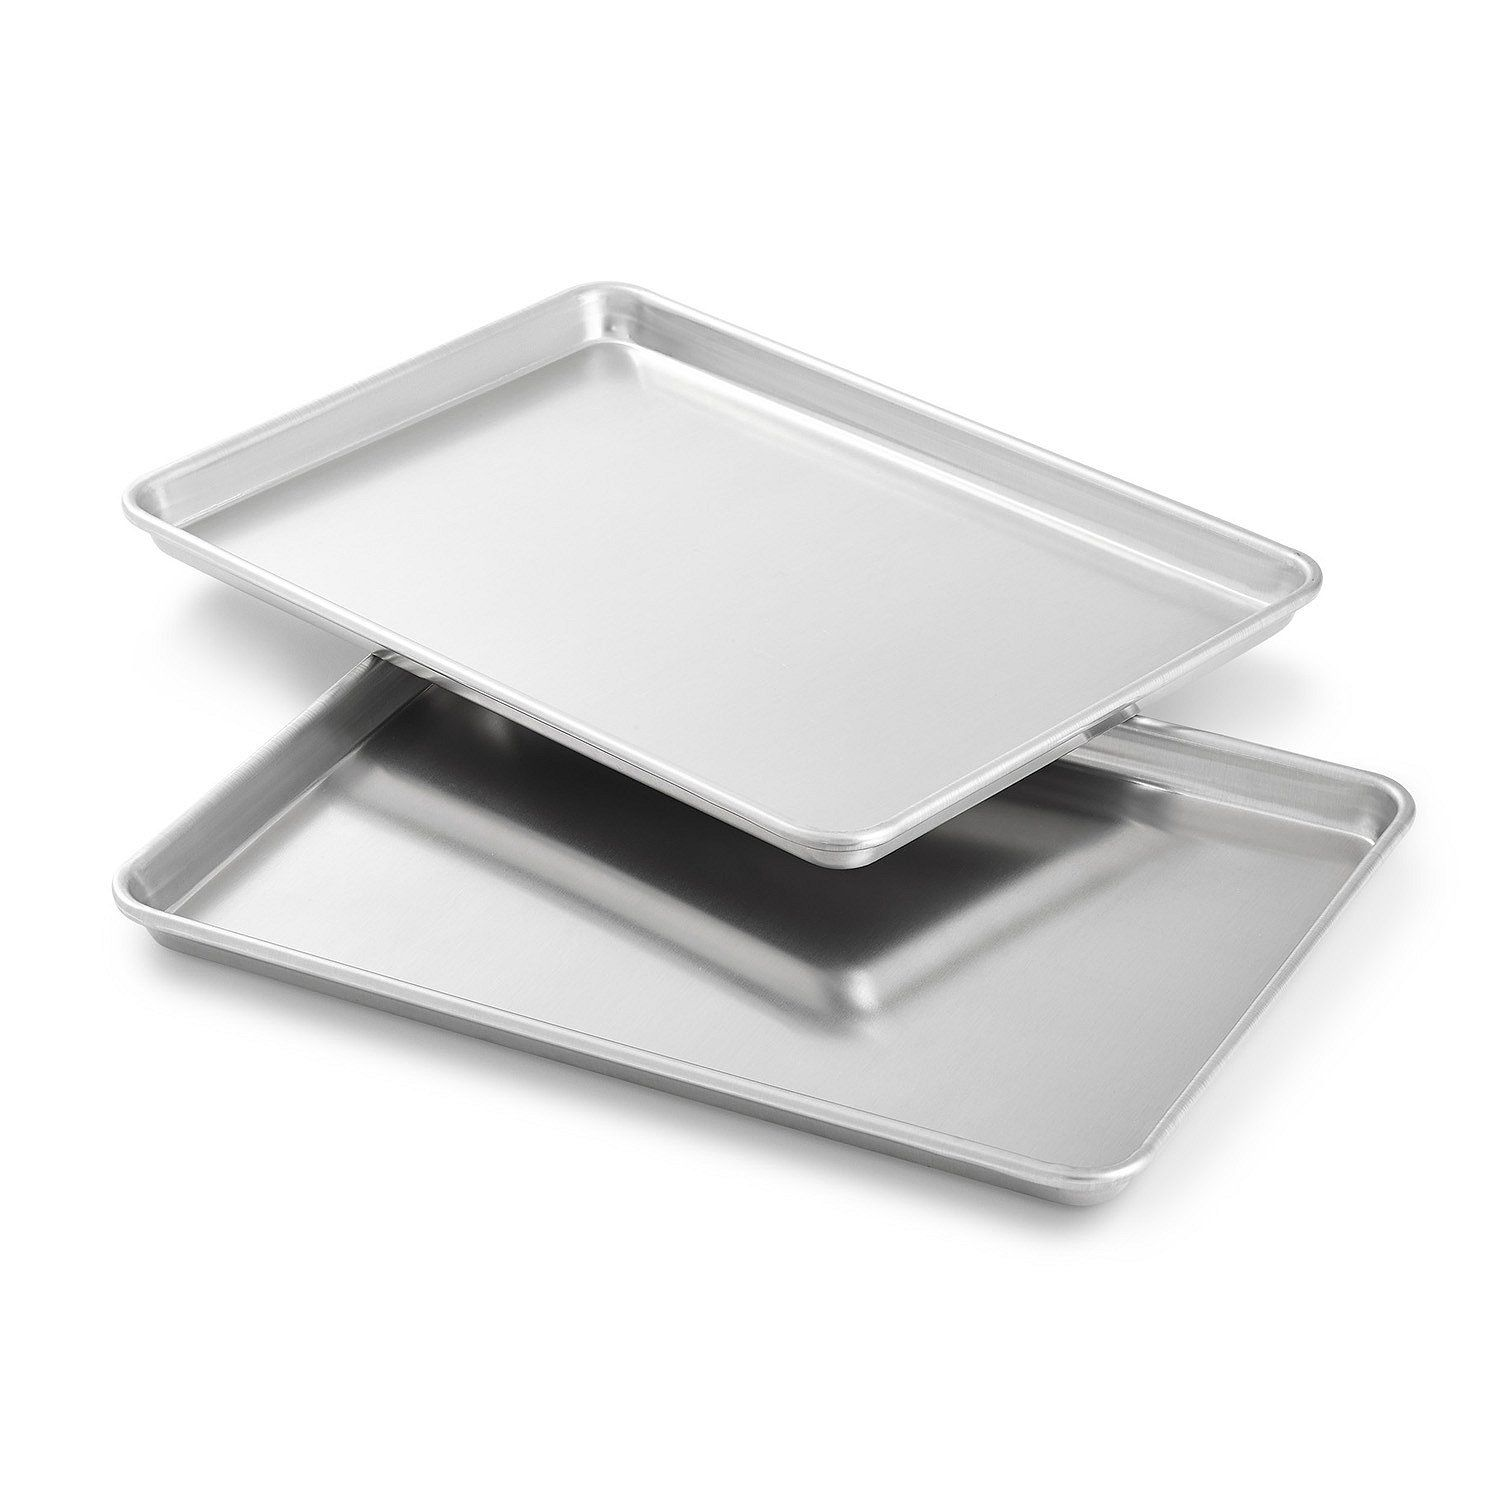 Polar Ware 1 4 Size Baking Sheet 2 Ct For More Information Visit Image Link This Is An Affili Stainless Steel Cookie Sheet Baking Sheet Cooking Sheet